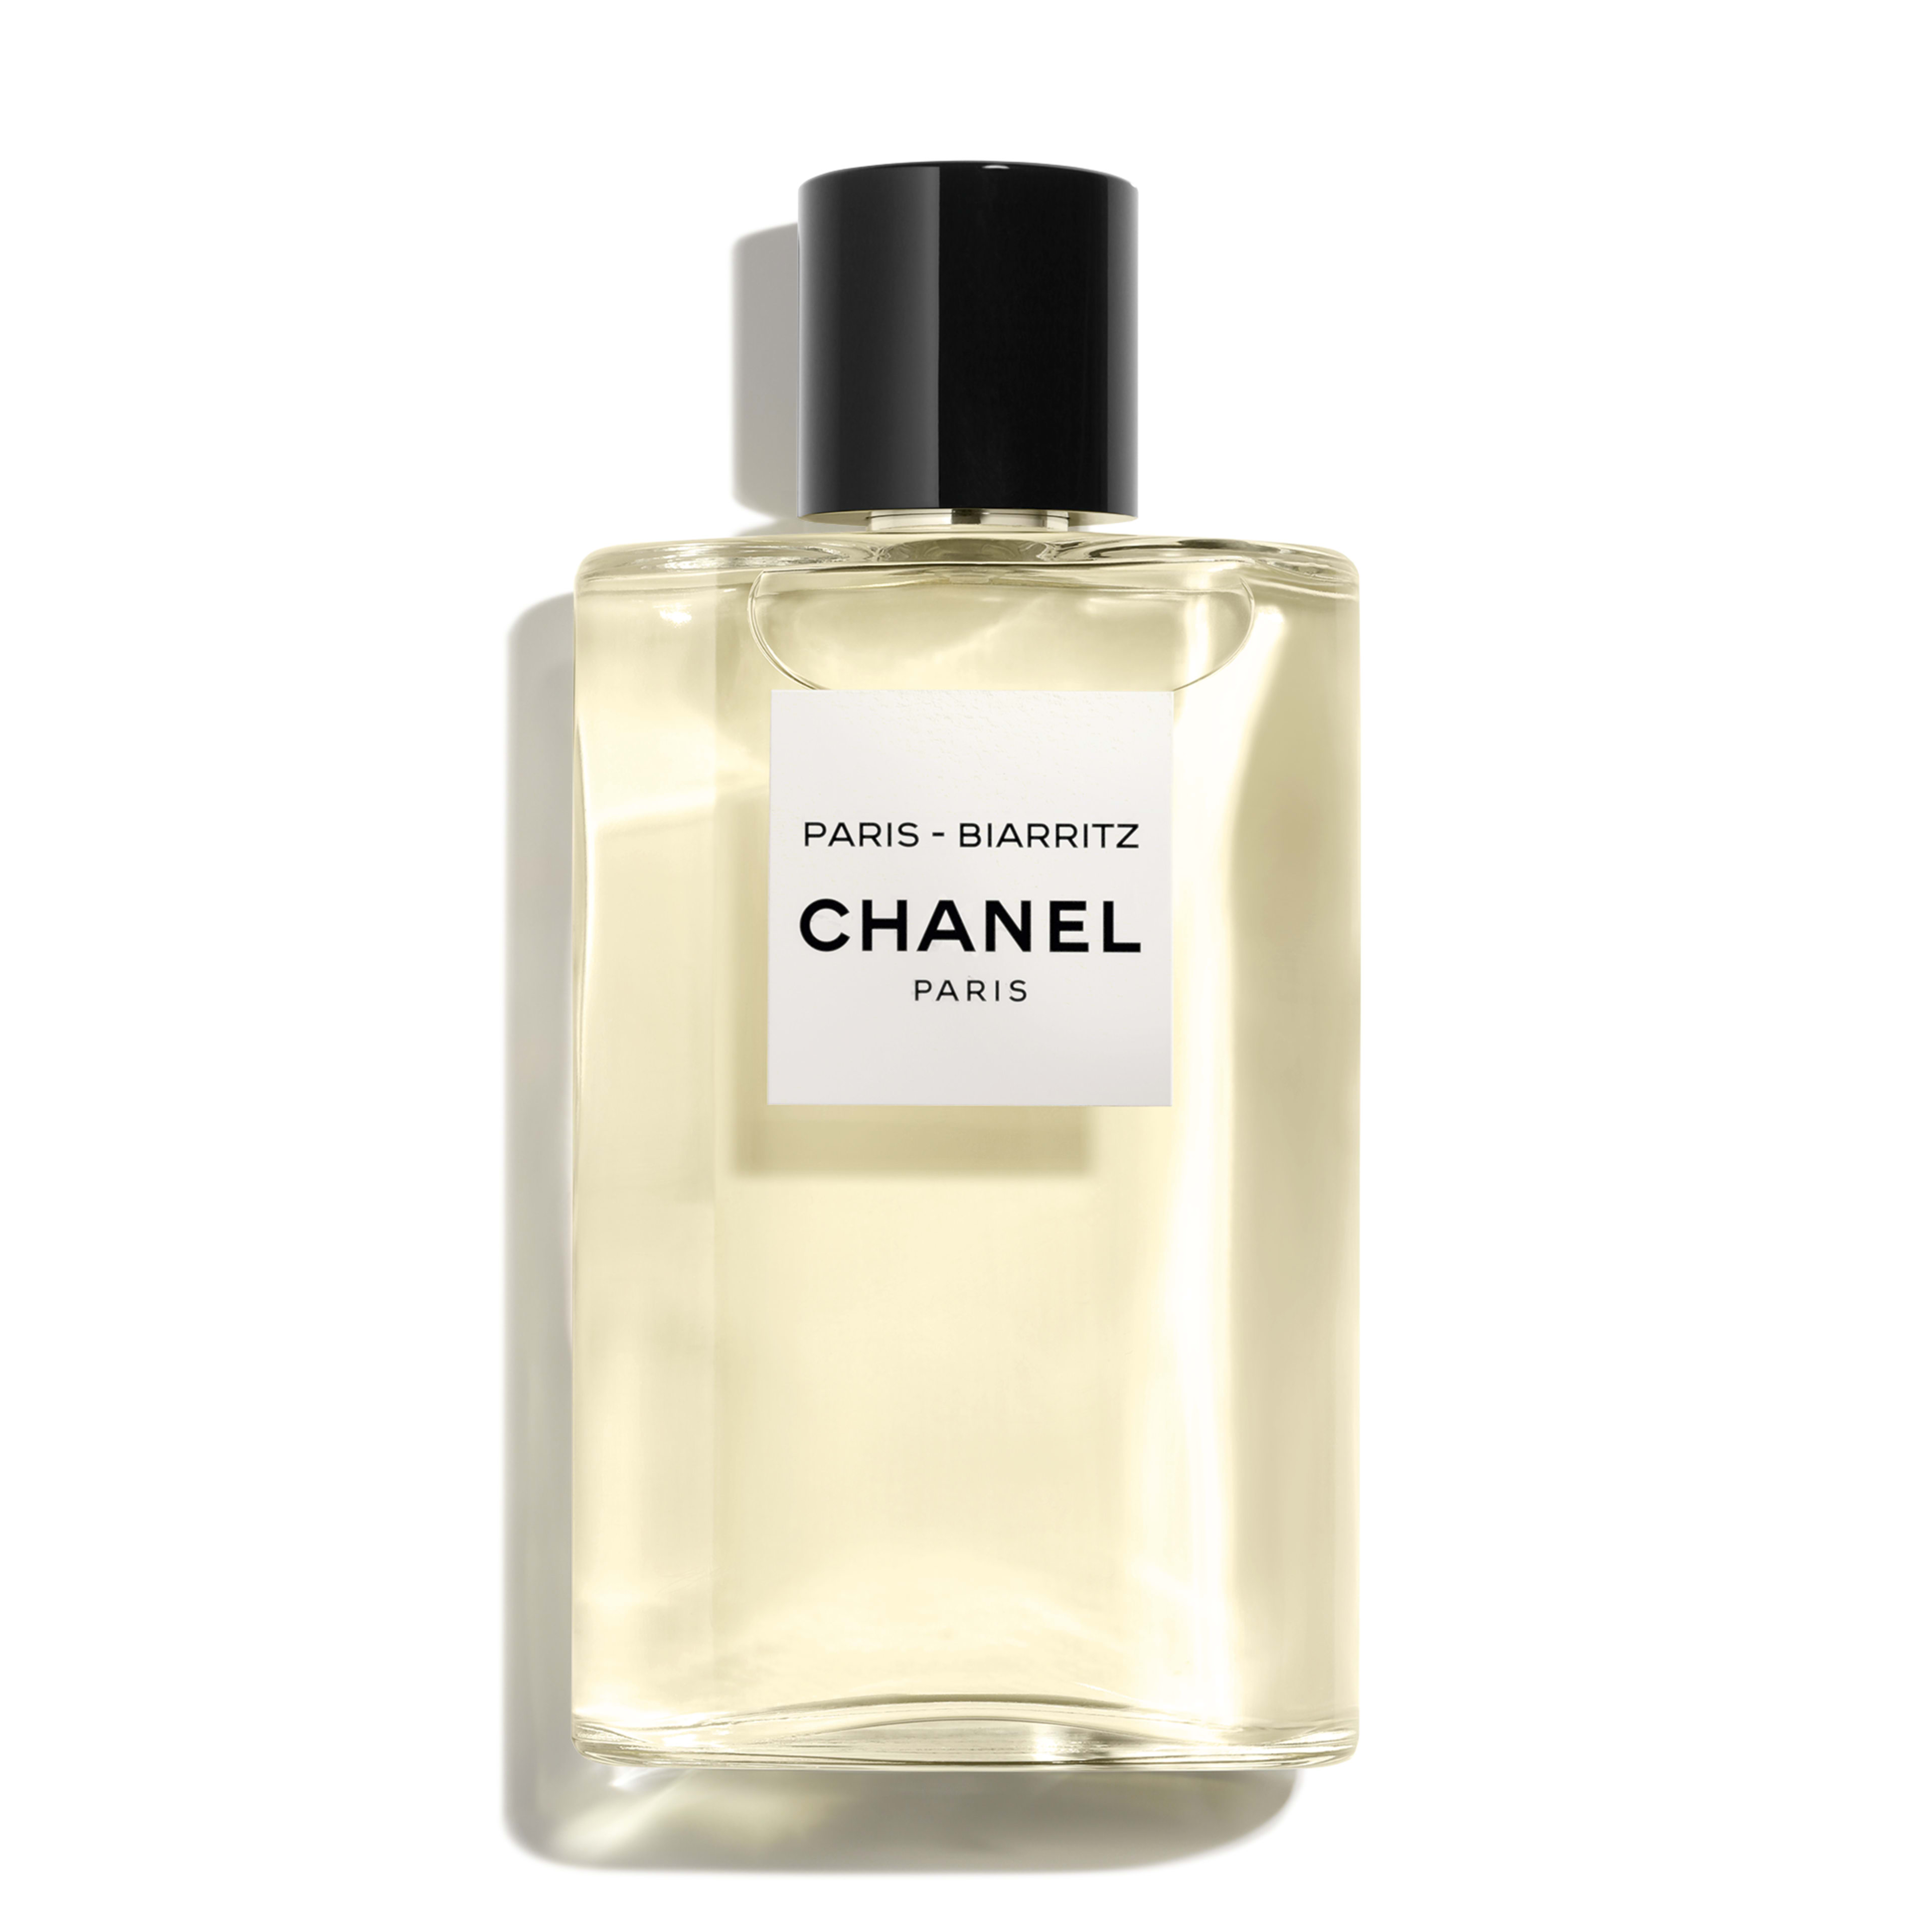 ed0390a31e PARIS - BIARRITZ LES EAUX DE CHANEL - HAIR AND BODY SHOWER GEL | CHANEL